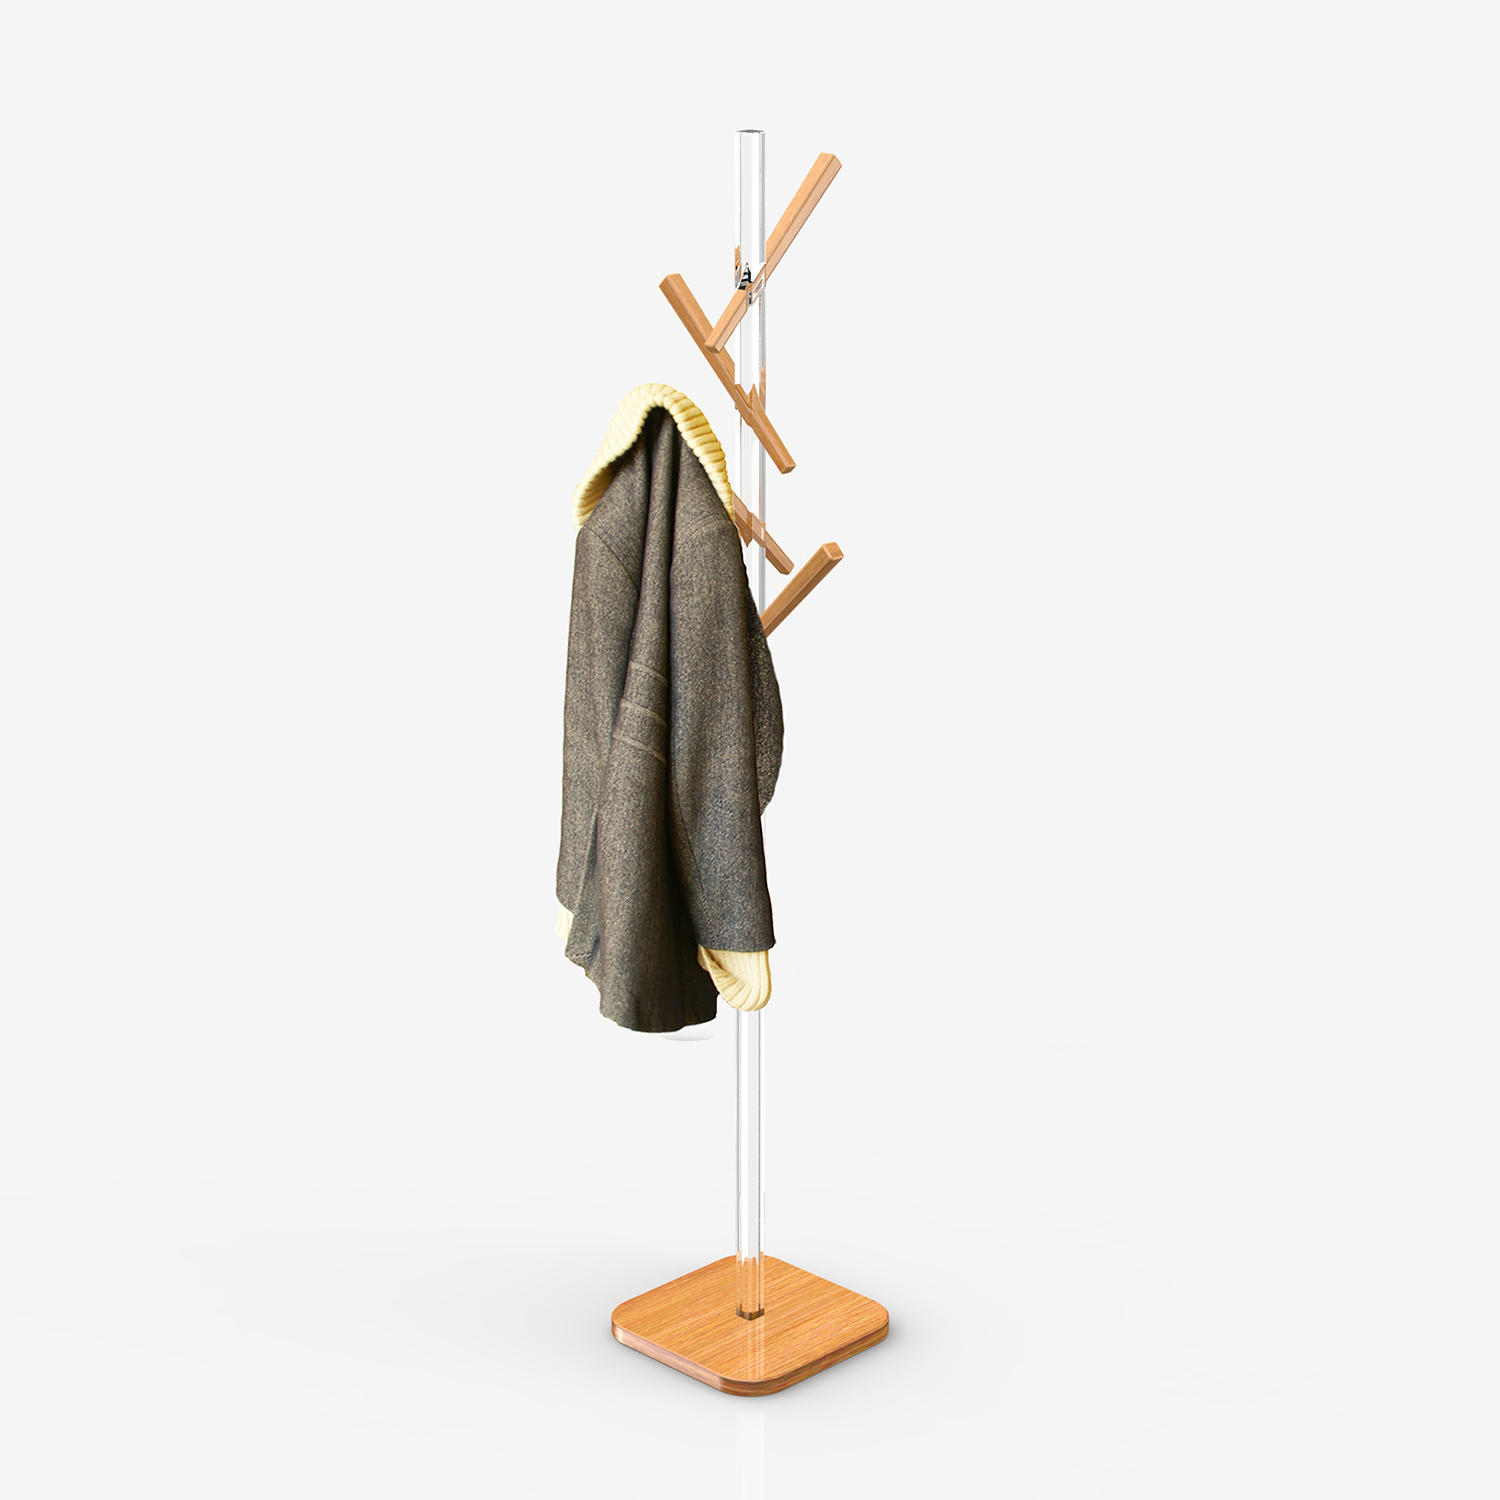 Phantom II Magical Coat Rack by Yu Hiraoka